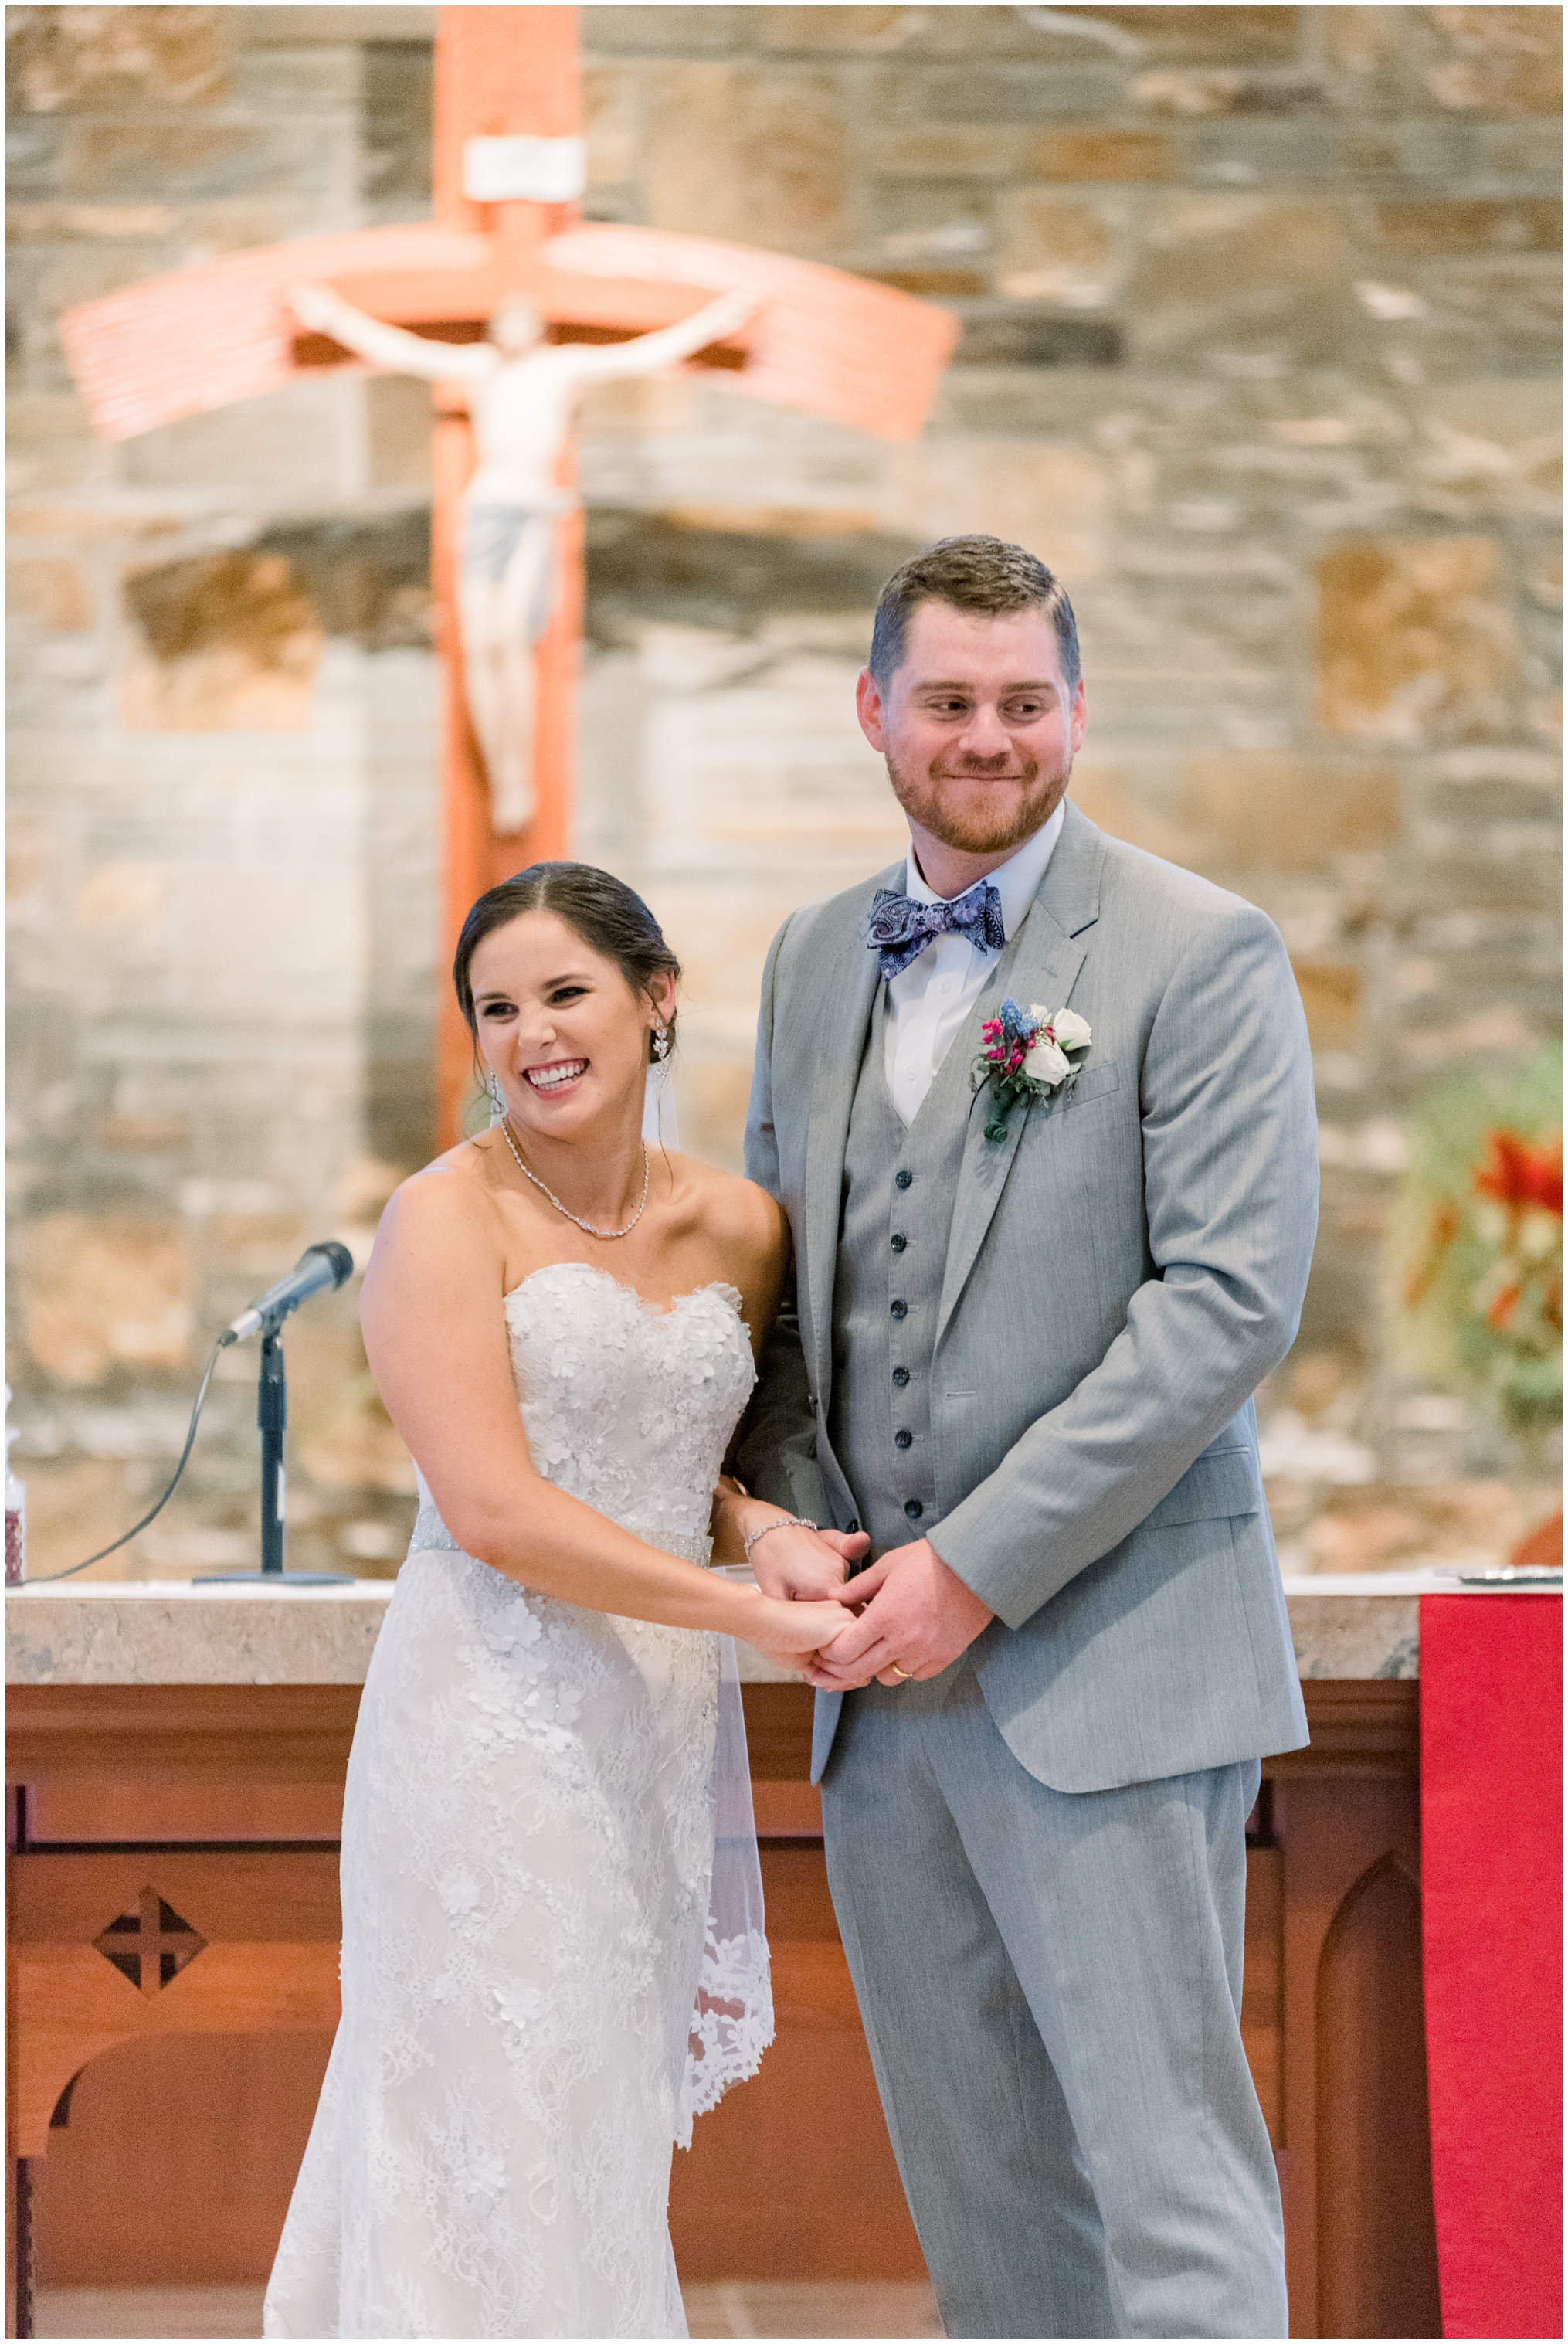 Krista Brackin Photography | April Wedding at The Carriage House at Rockwood Park_0048.jpg